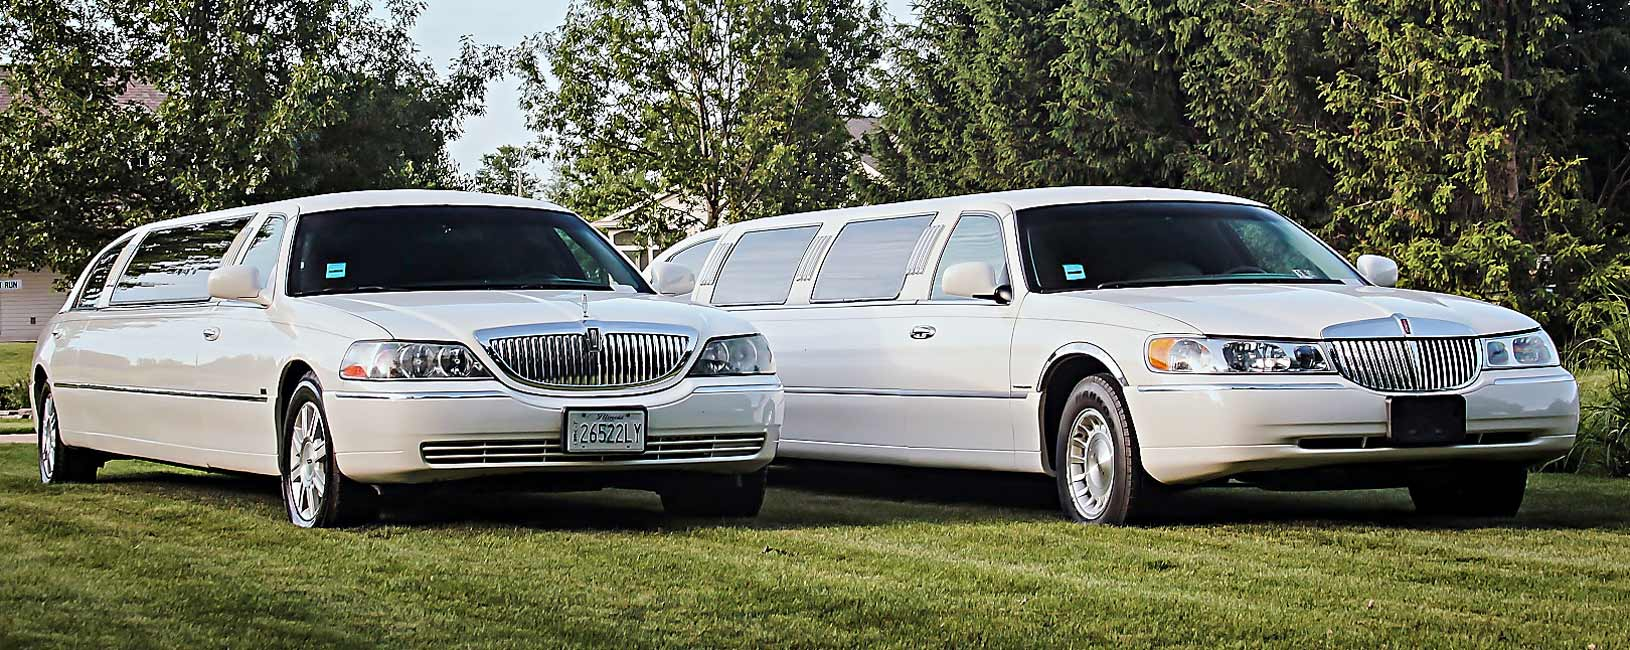 central-illinois-limousine-rental-services-650